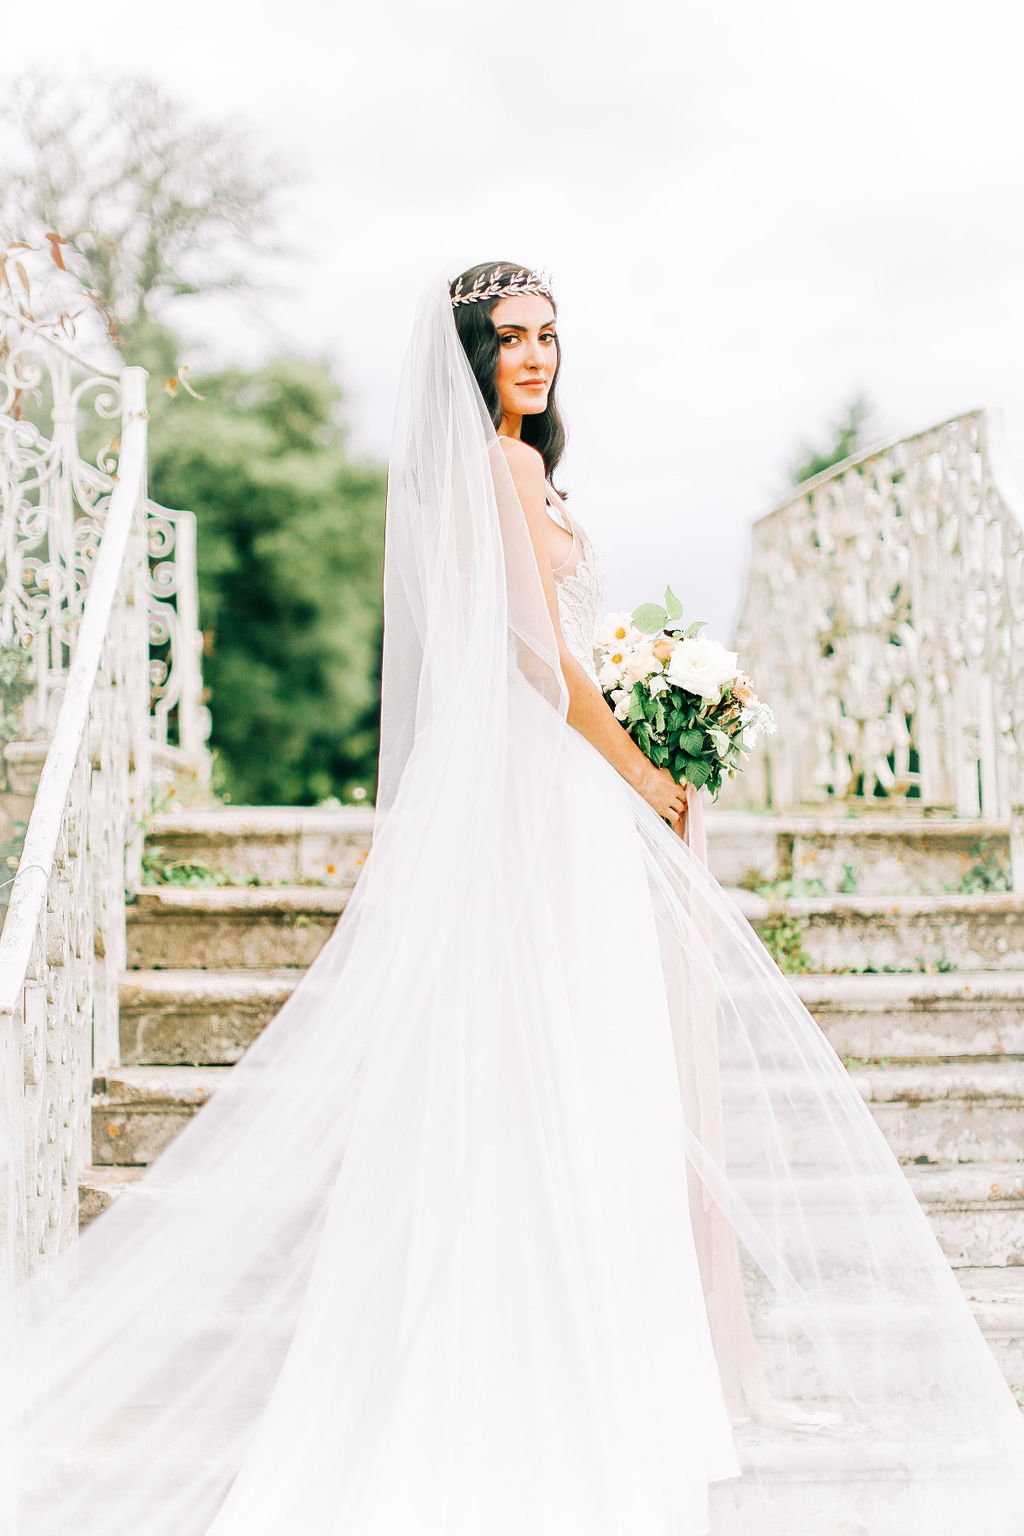 Ballgown Wedding Dress at Stately Home Wedding Venue Hampshire